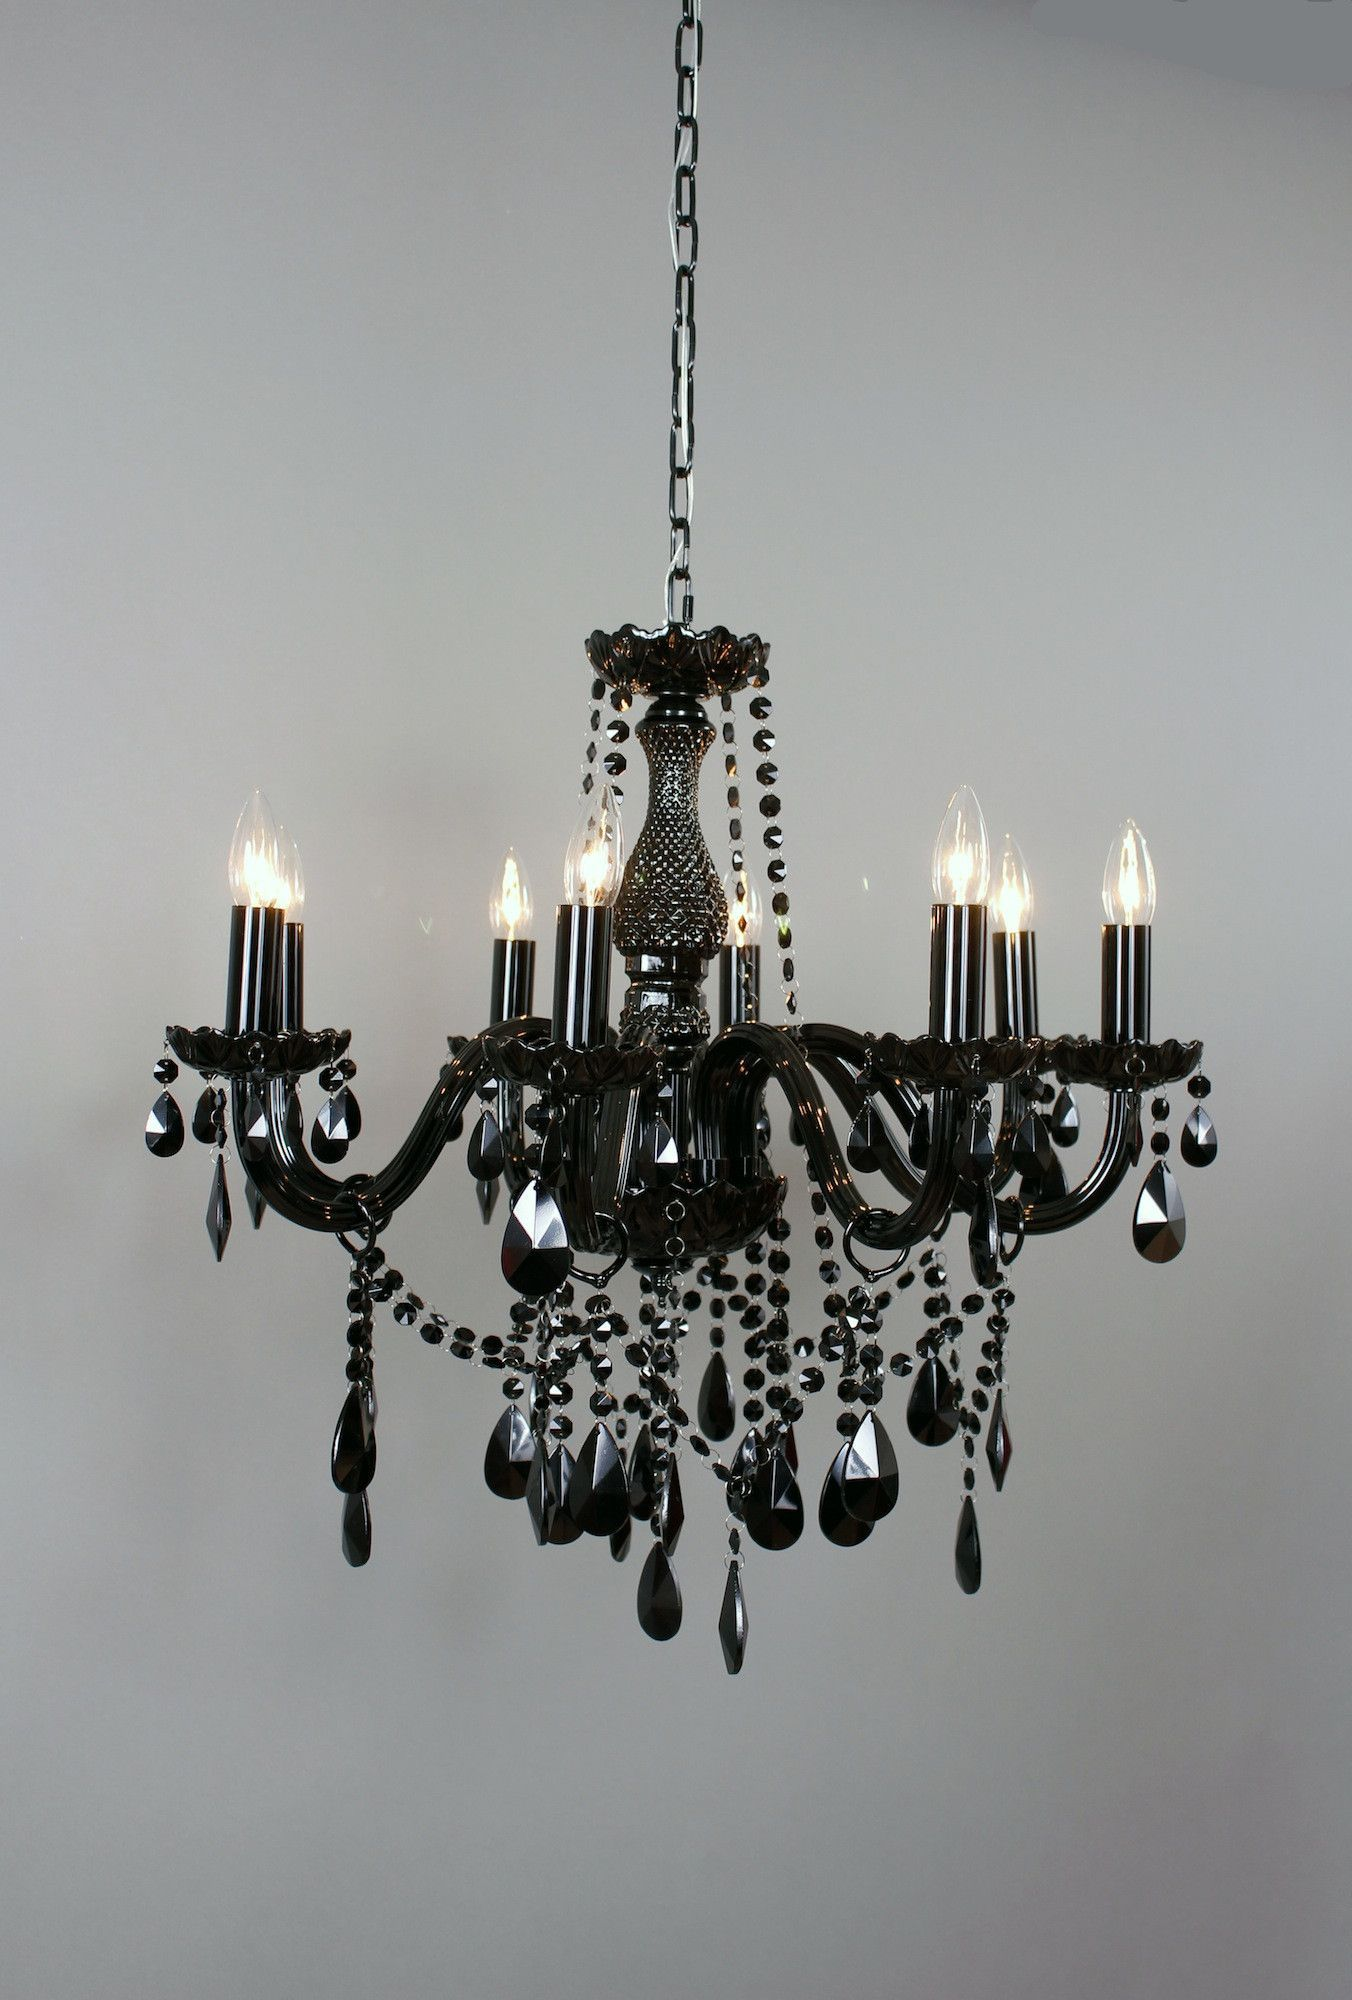 Dimensions 29 5HX24 375WX24 375D The traditional chandelier